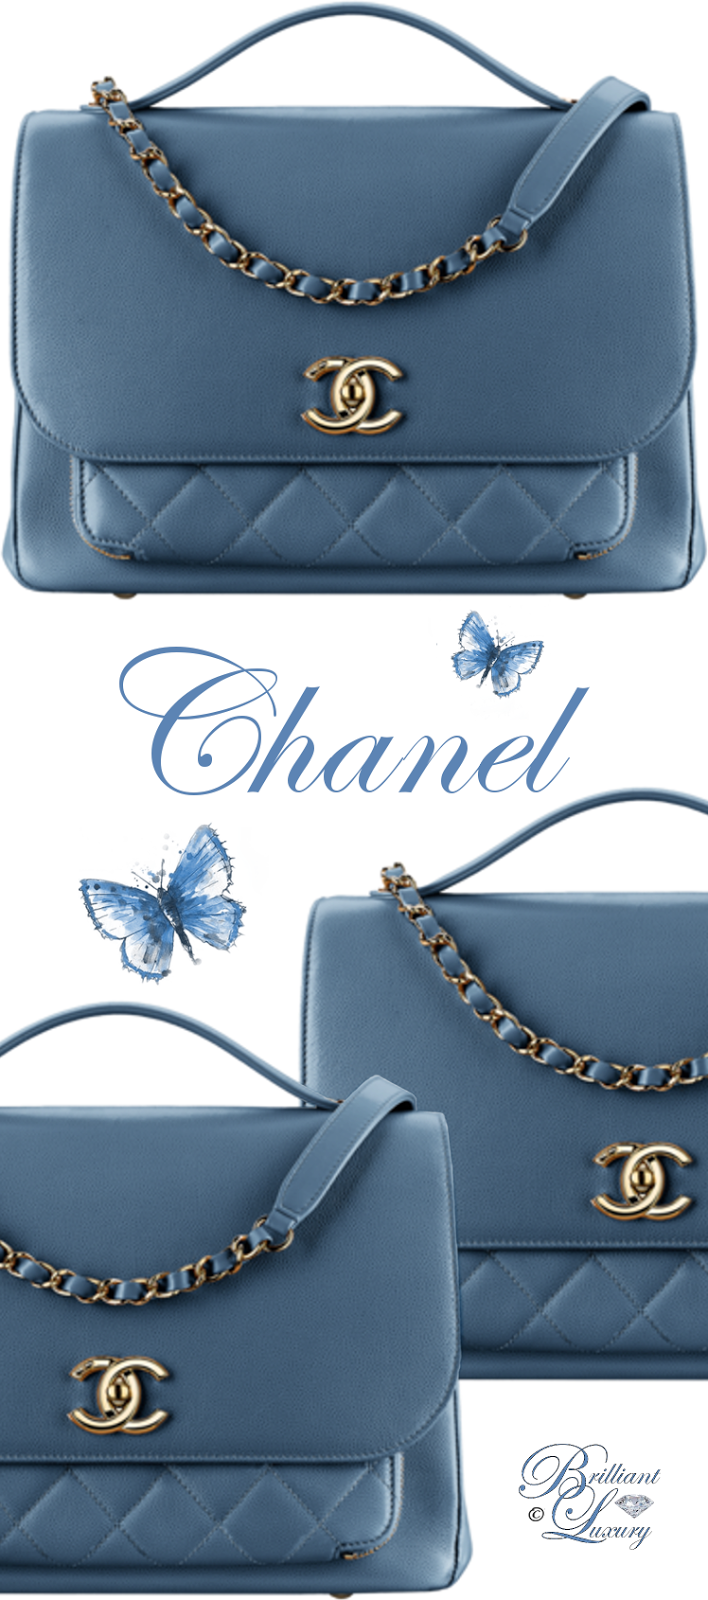 Brilliant Luxury ♦ Chanel Flap Bag With Top Handle